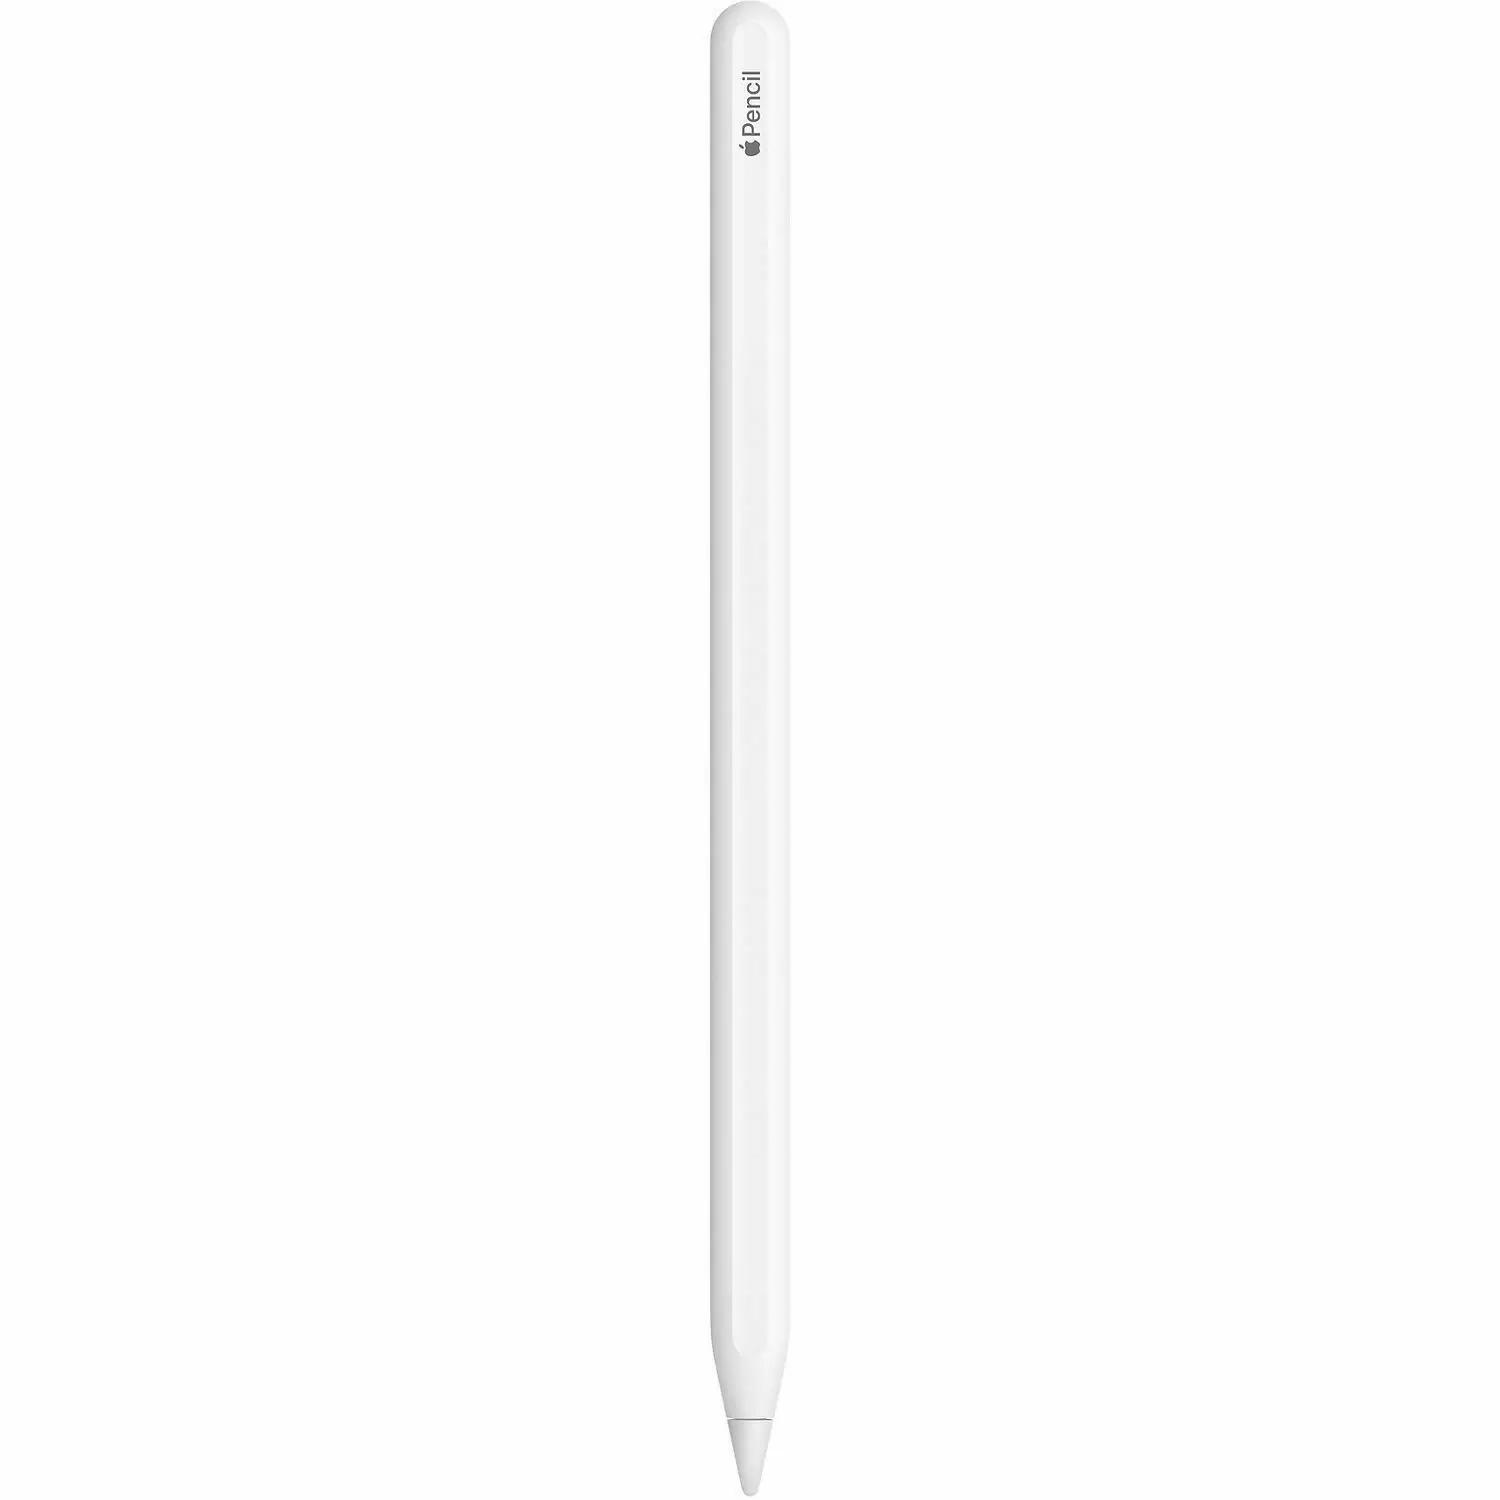 Apple Pencil 2nd Generation for $79 Shipped